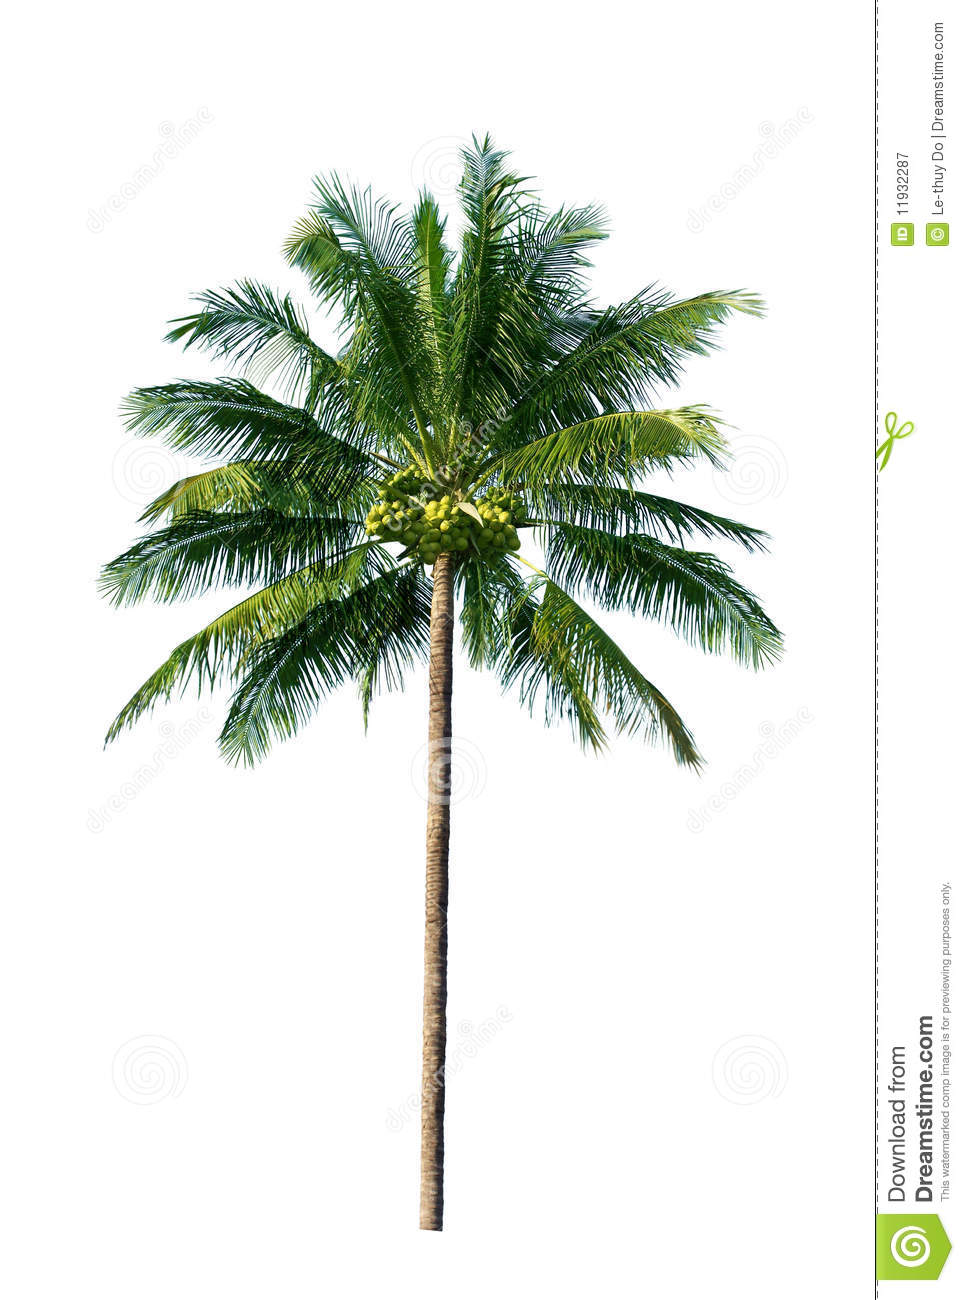 Coconut Tree Royalty Free Stock Photography - Image: 11932287